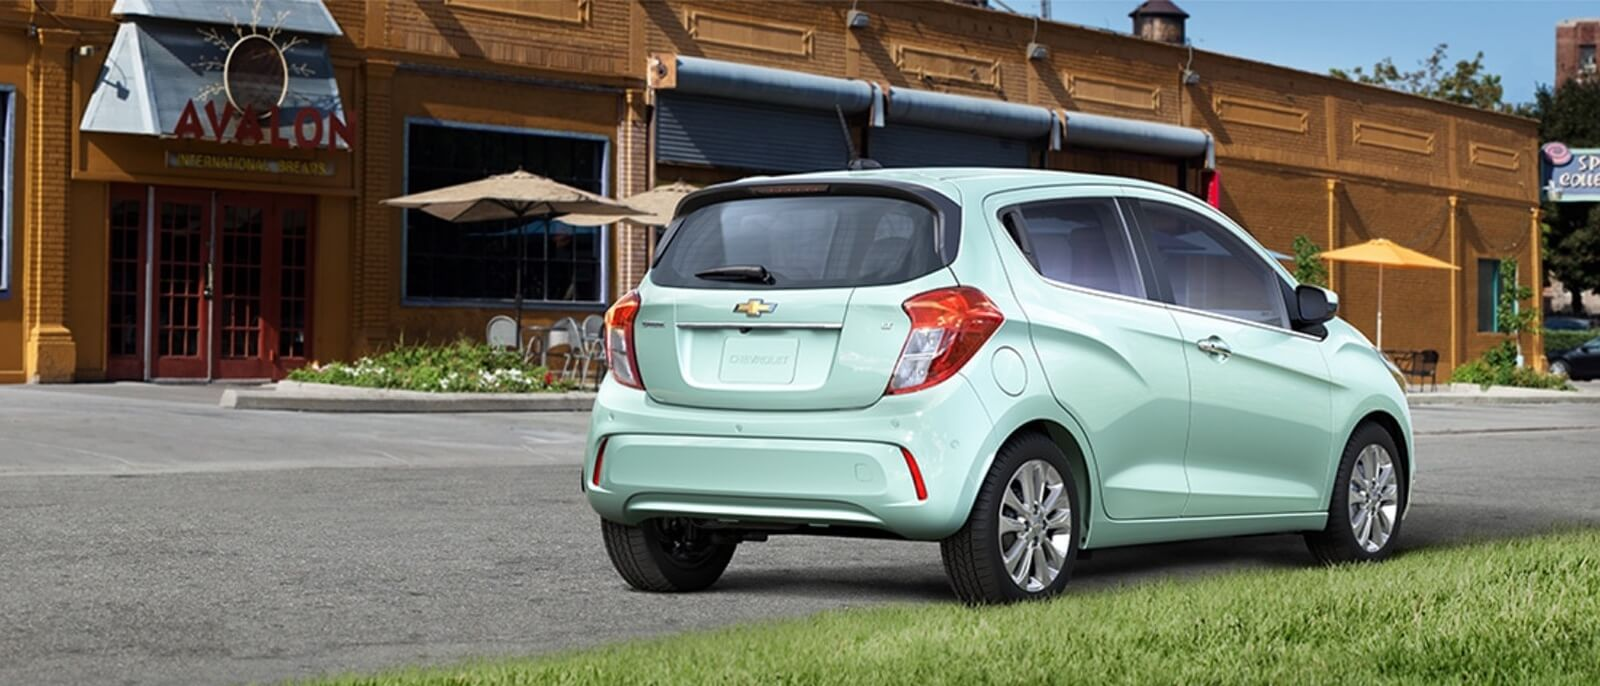 2017 Chevrolet Spark rear view